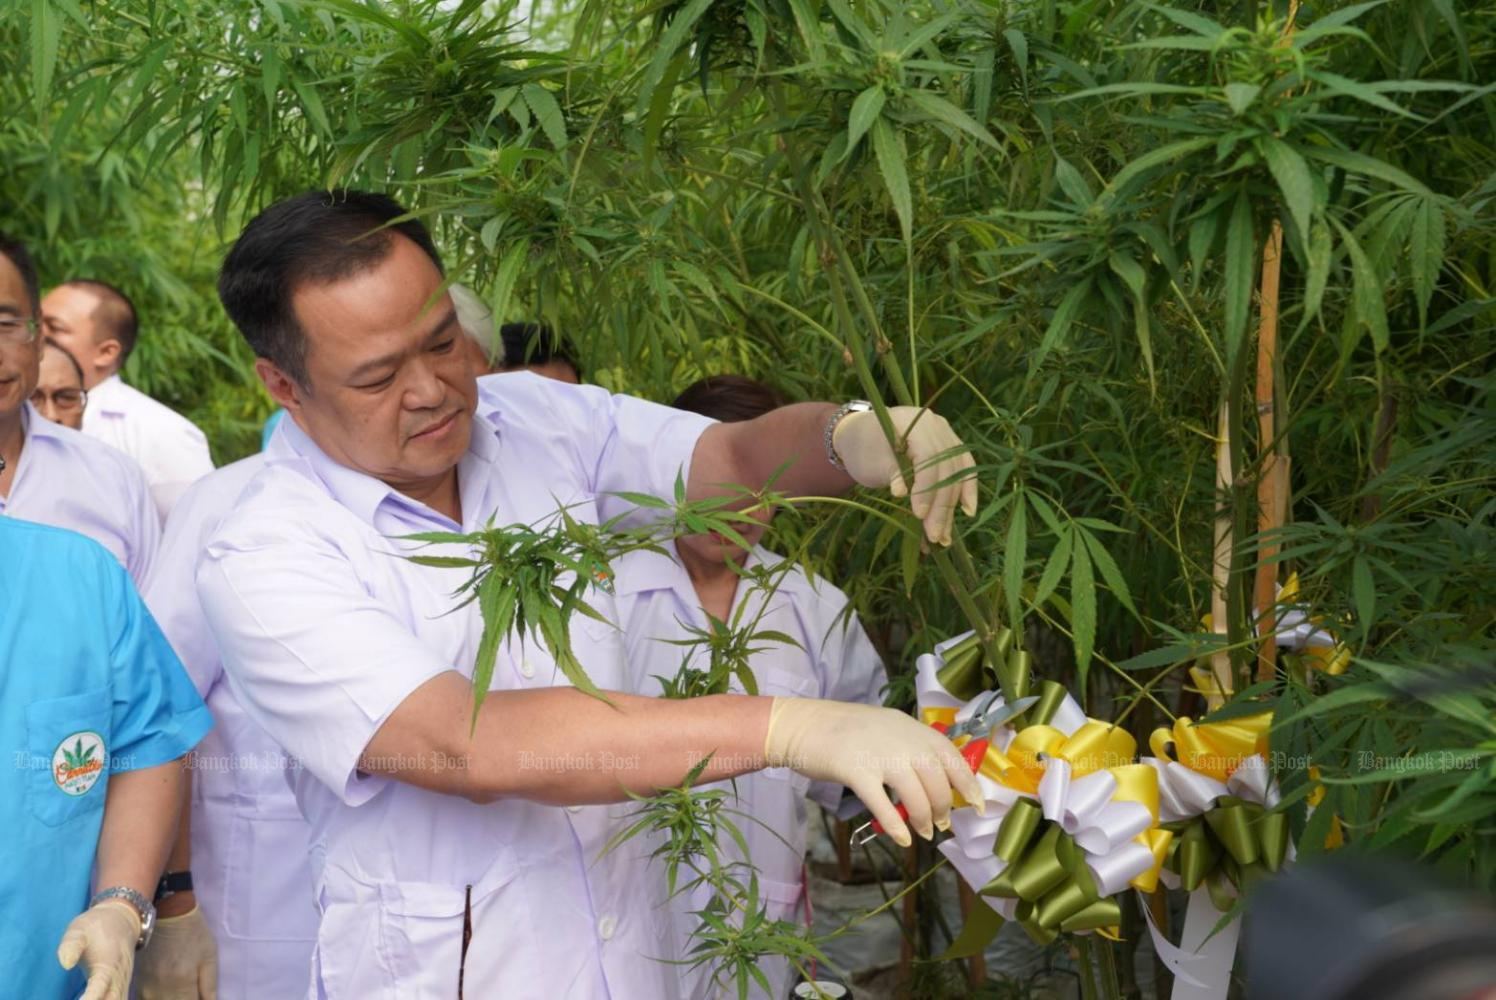 Public Health Minister Anutin Charnvirakul harvests the first marijuana flower planted in a closed-system farm run by Maejo University in Chiang Mai's San Sai district. (Photo by Onnucha Hutasingh)